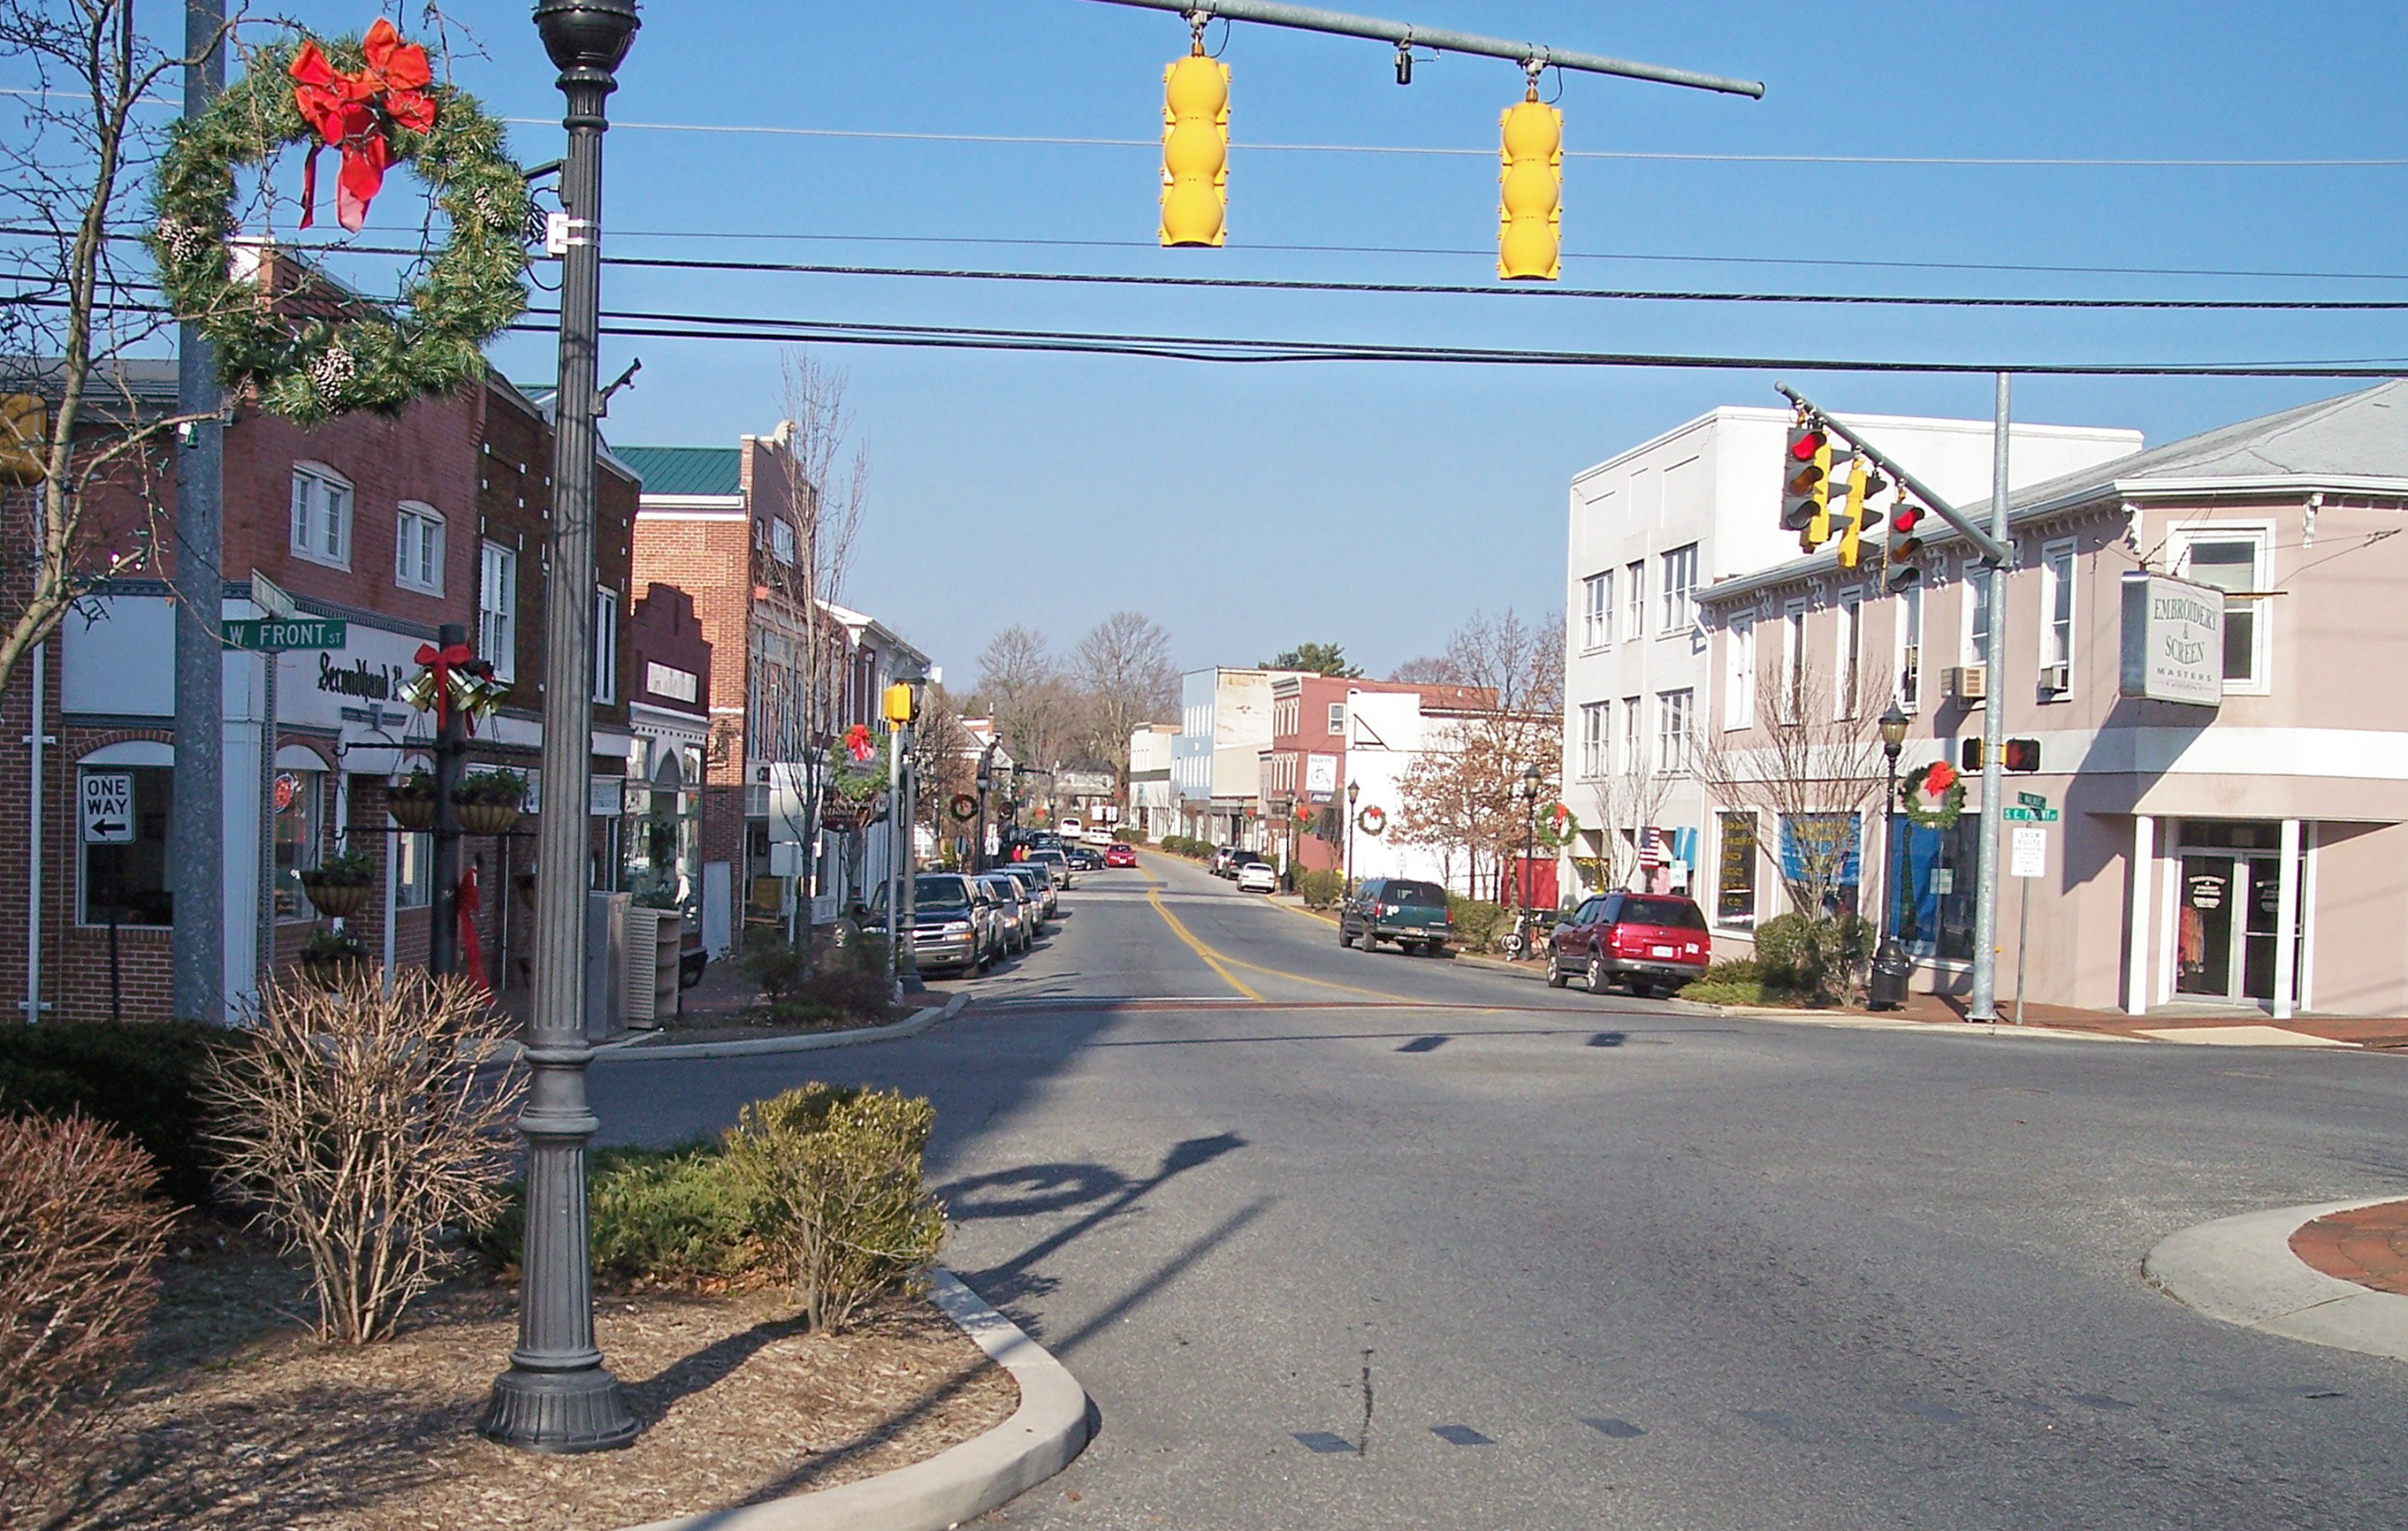 Opinions on milford delaware for The milford